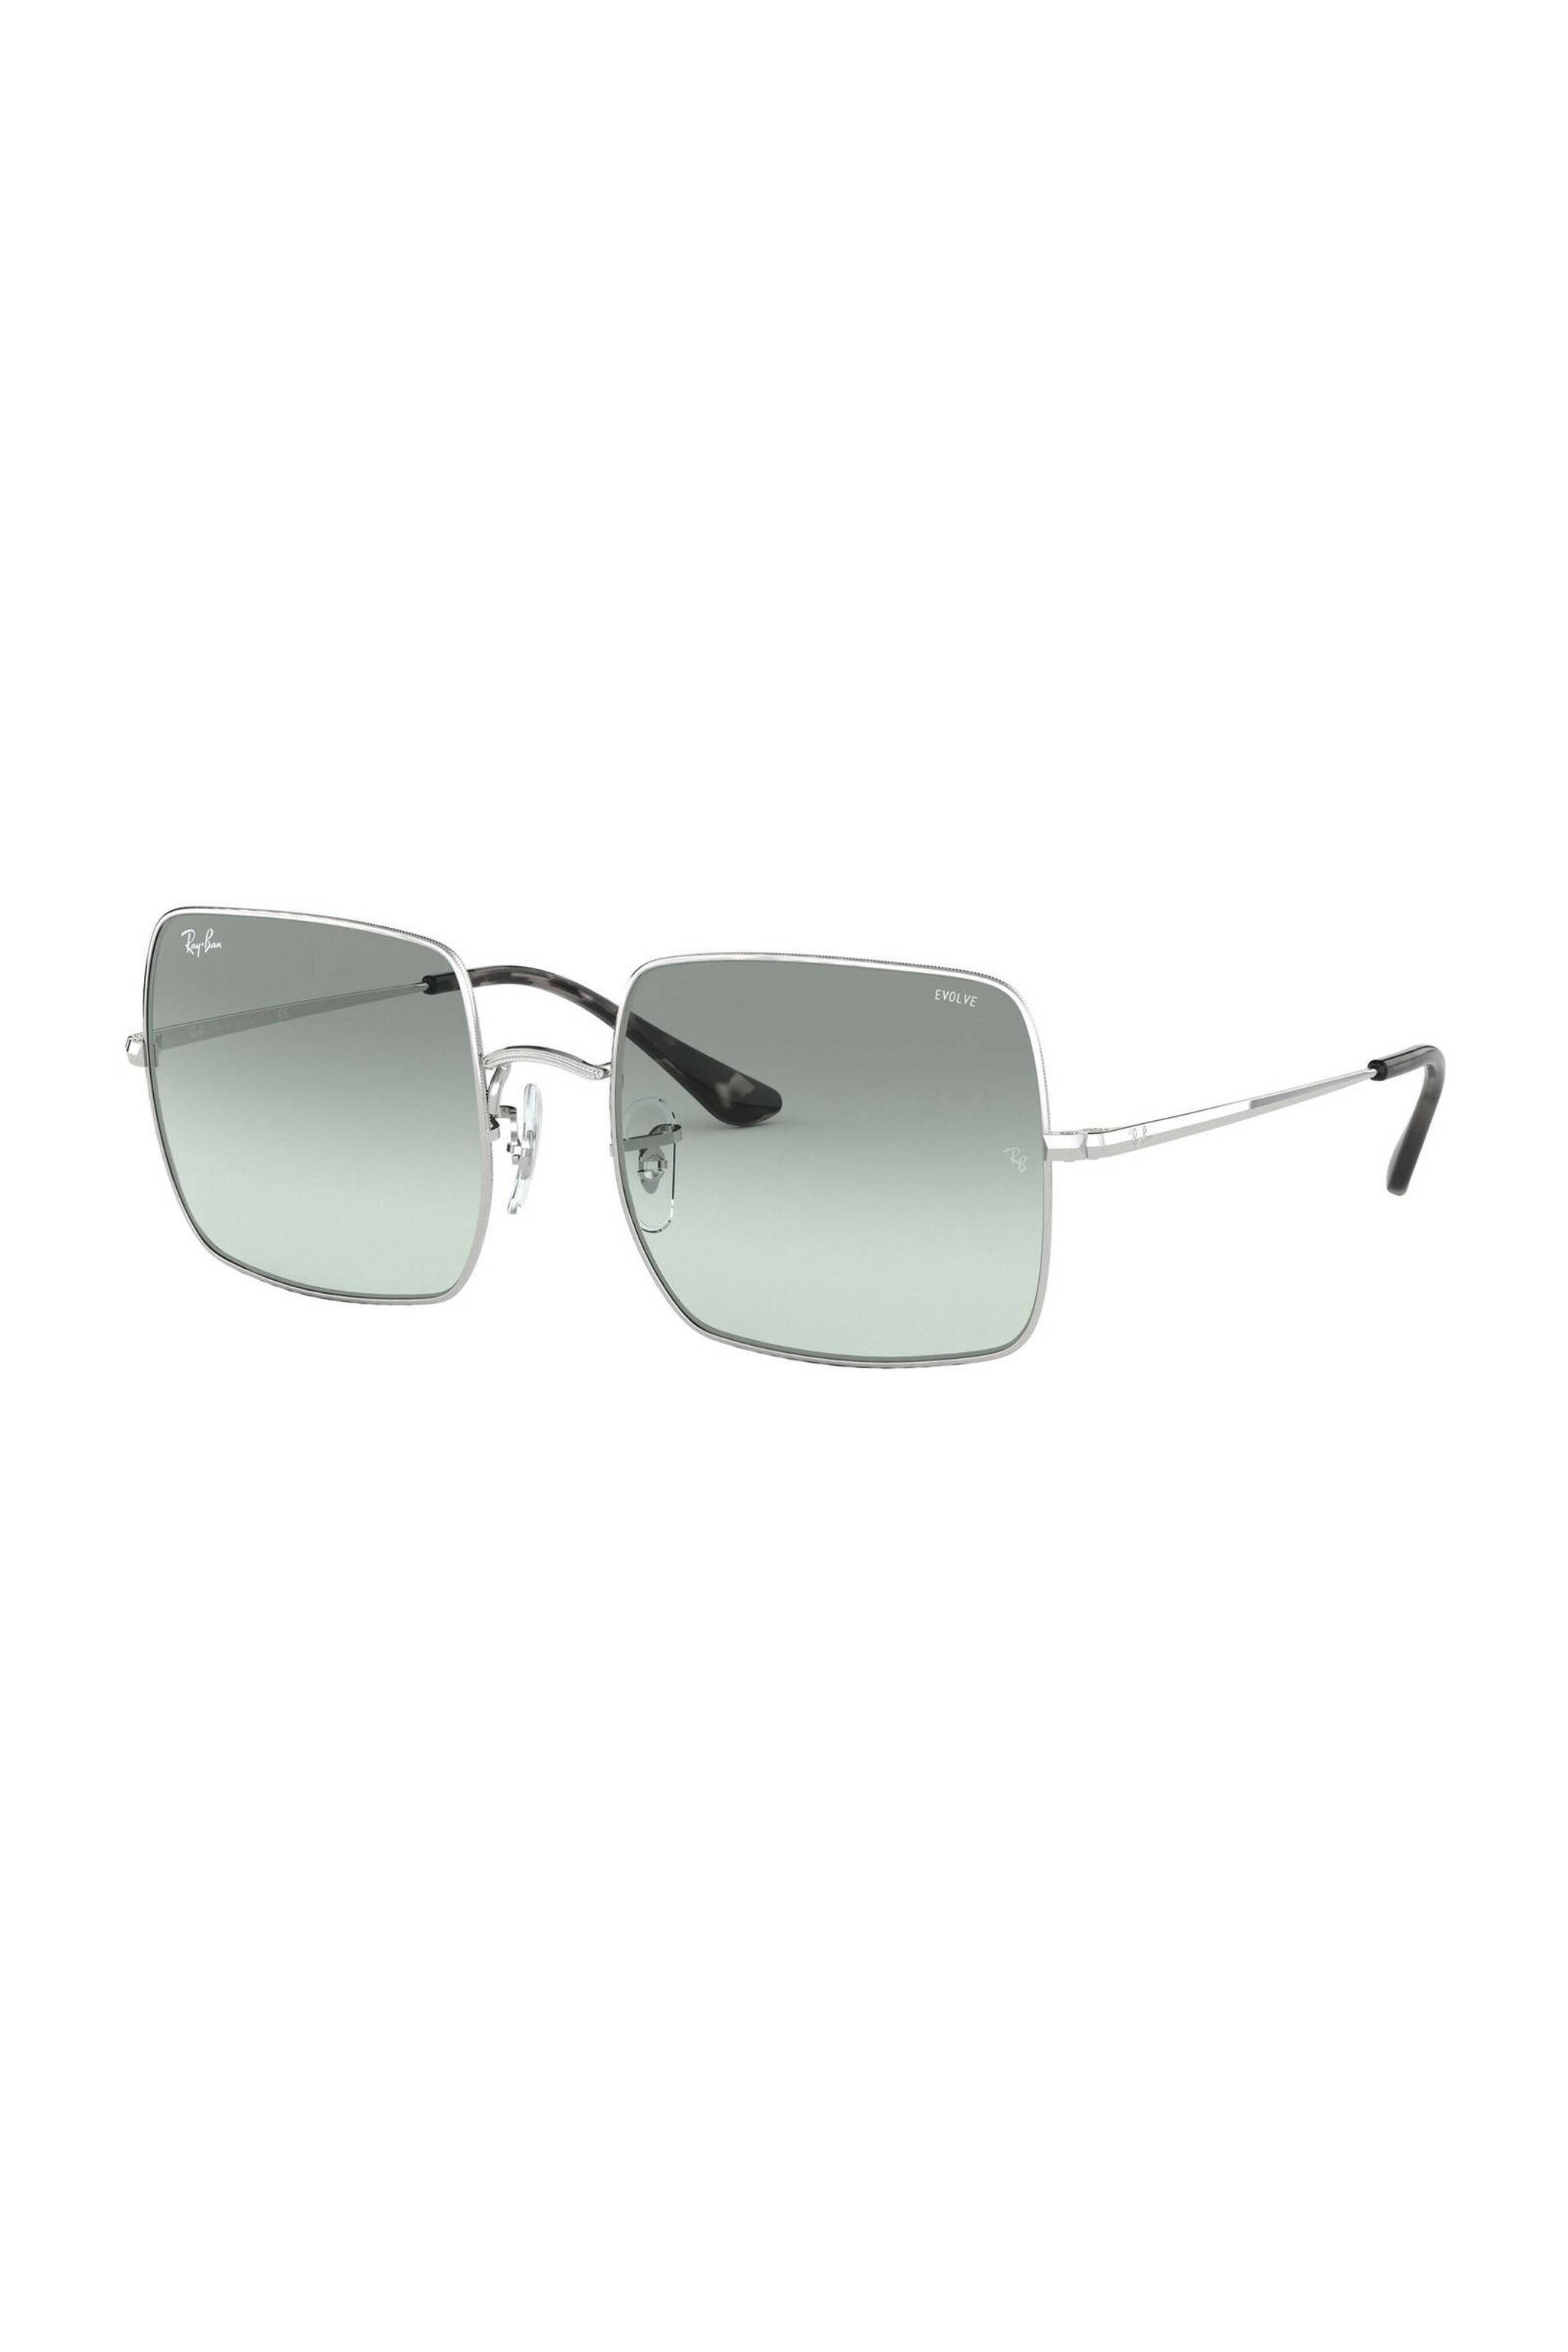 9f85f1c31ba670 Ray-Ban zonnebril 0RB1971